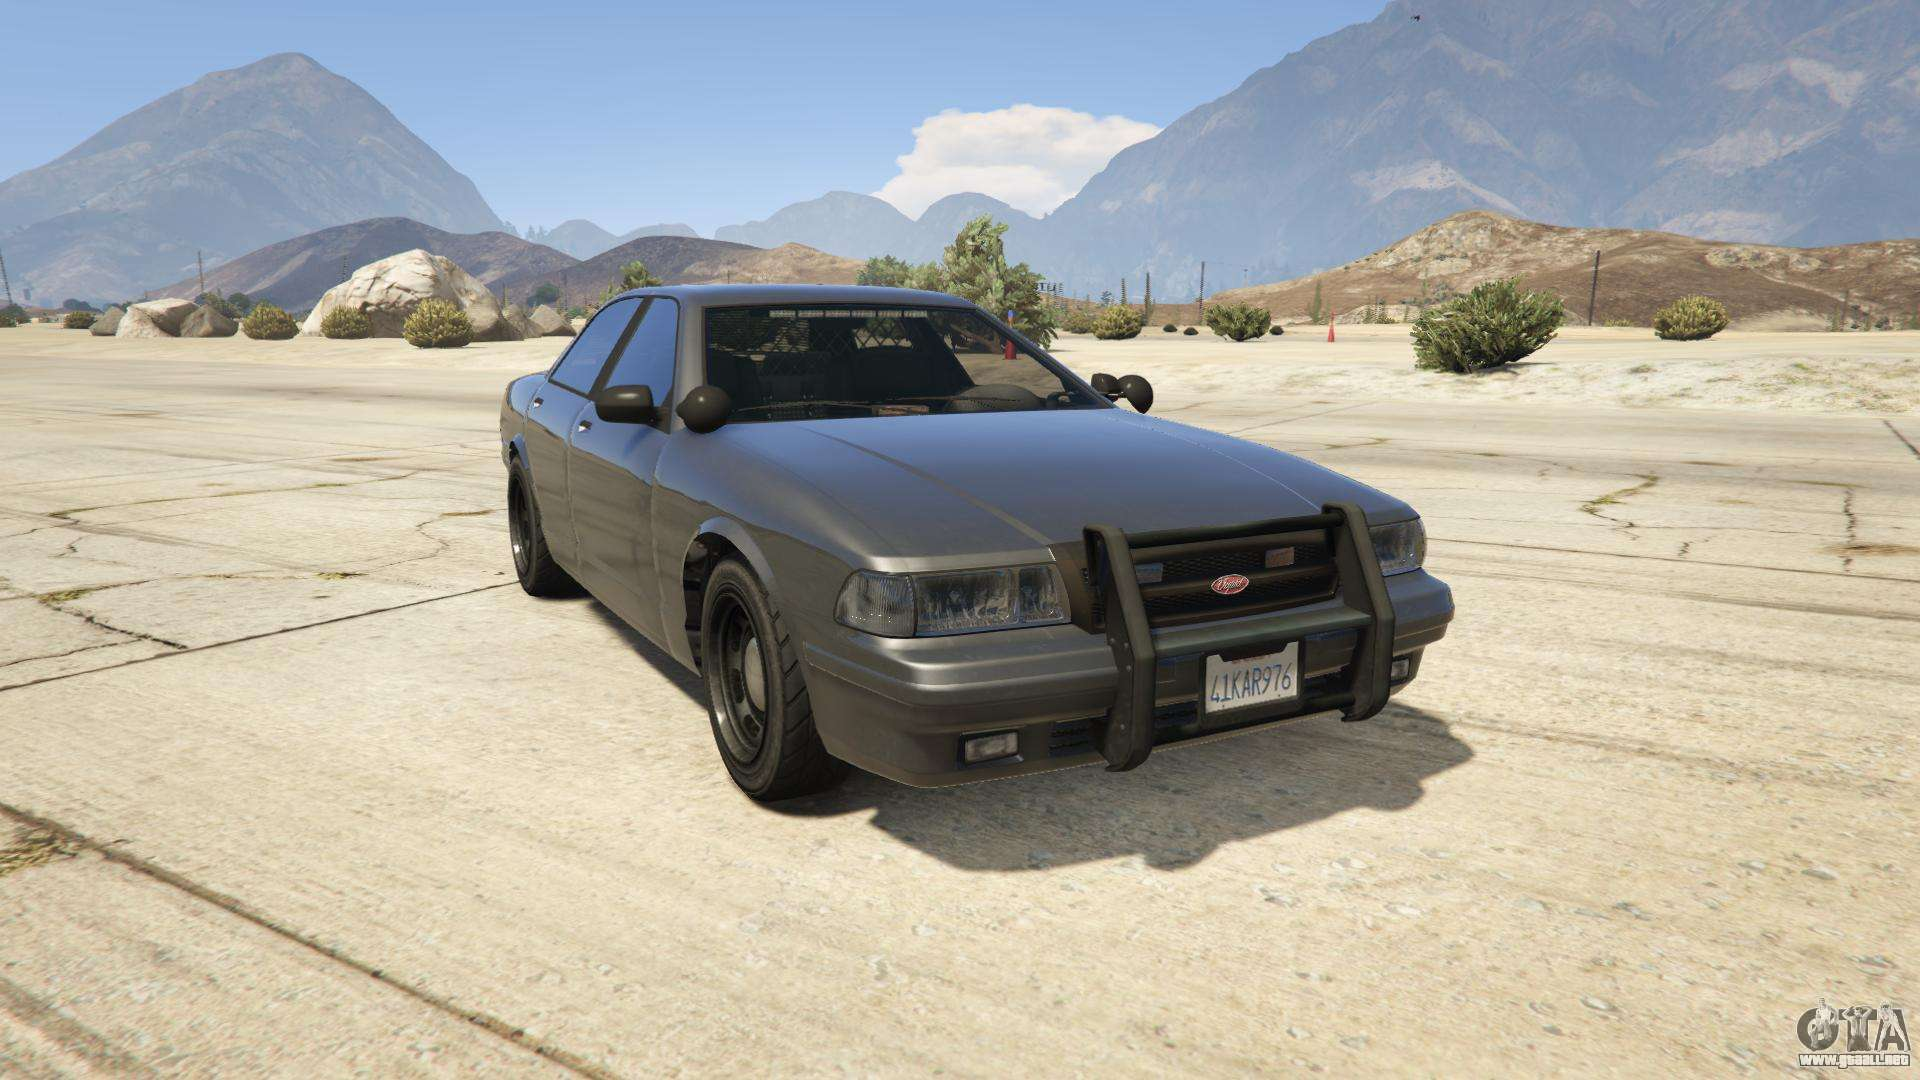 GTA 5 Vapid Unmarked Cruiser - vista frontal